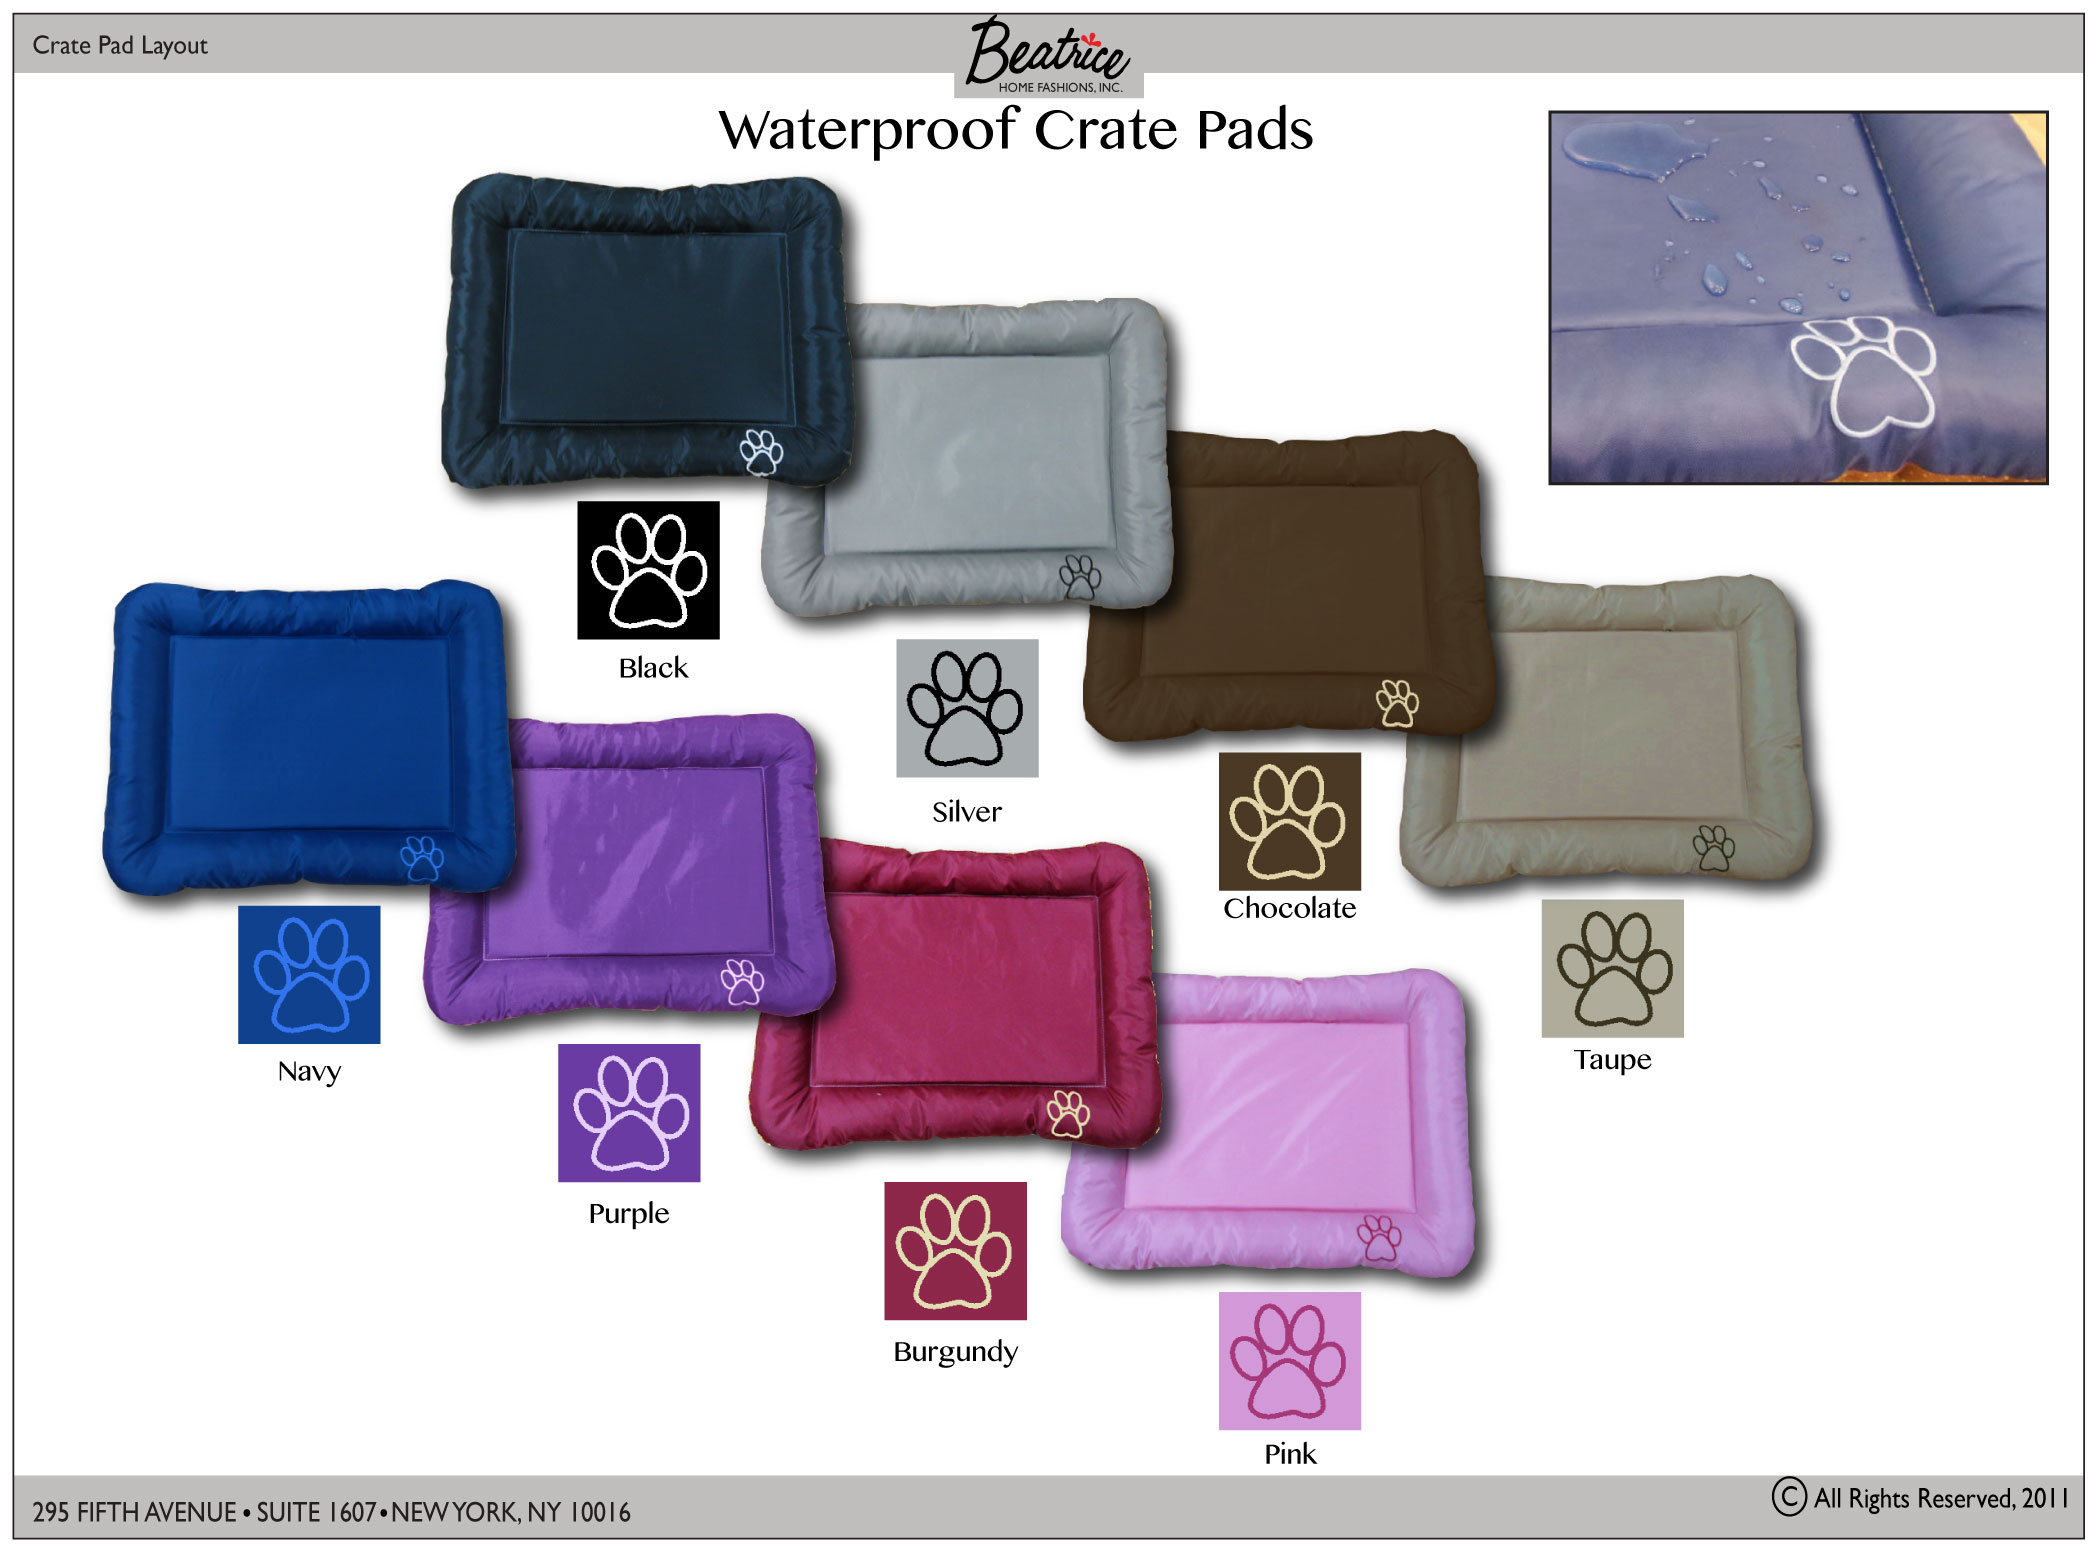 WATERPROOF CRATE PADS